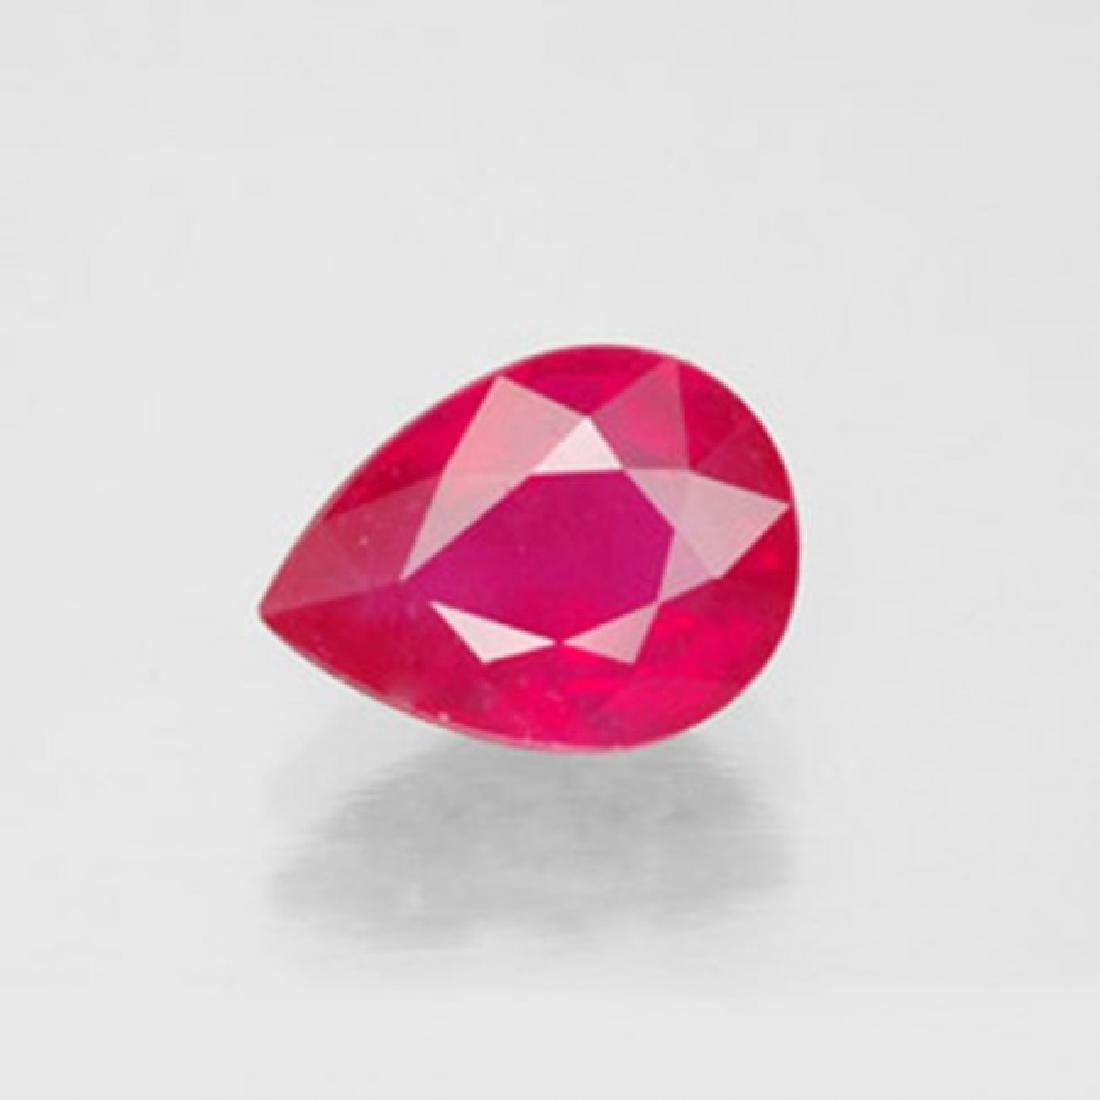 Natural Ruby Pear Facet 1.79Ct 8.1x6.3x4.1 mm